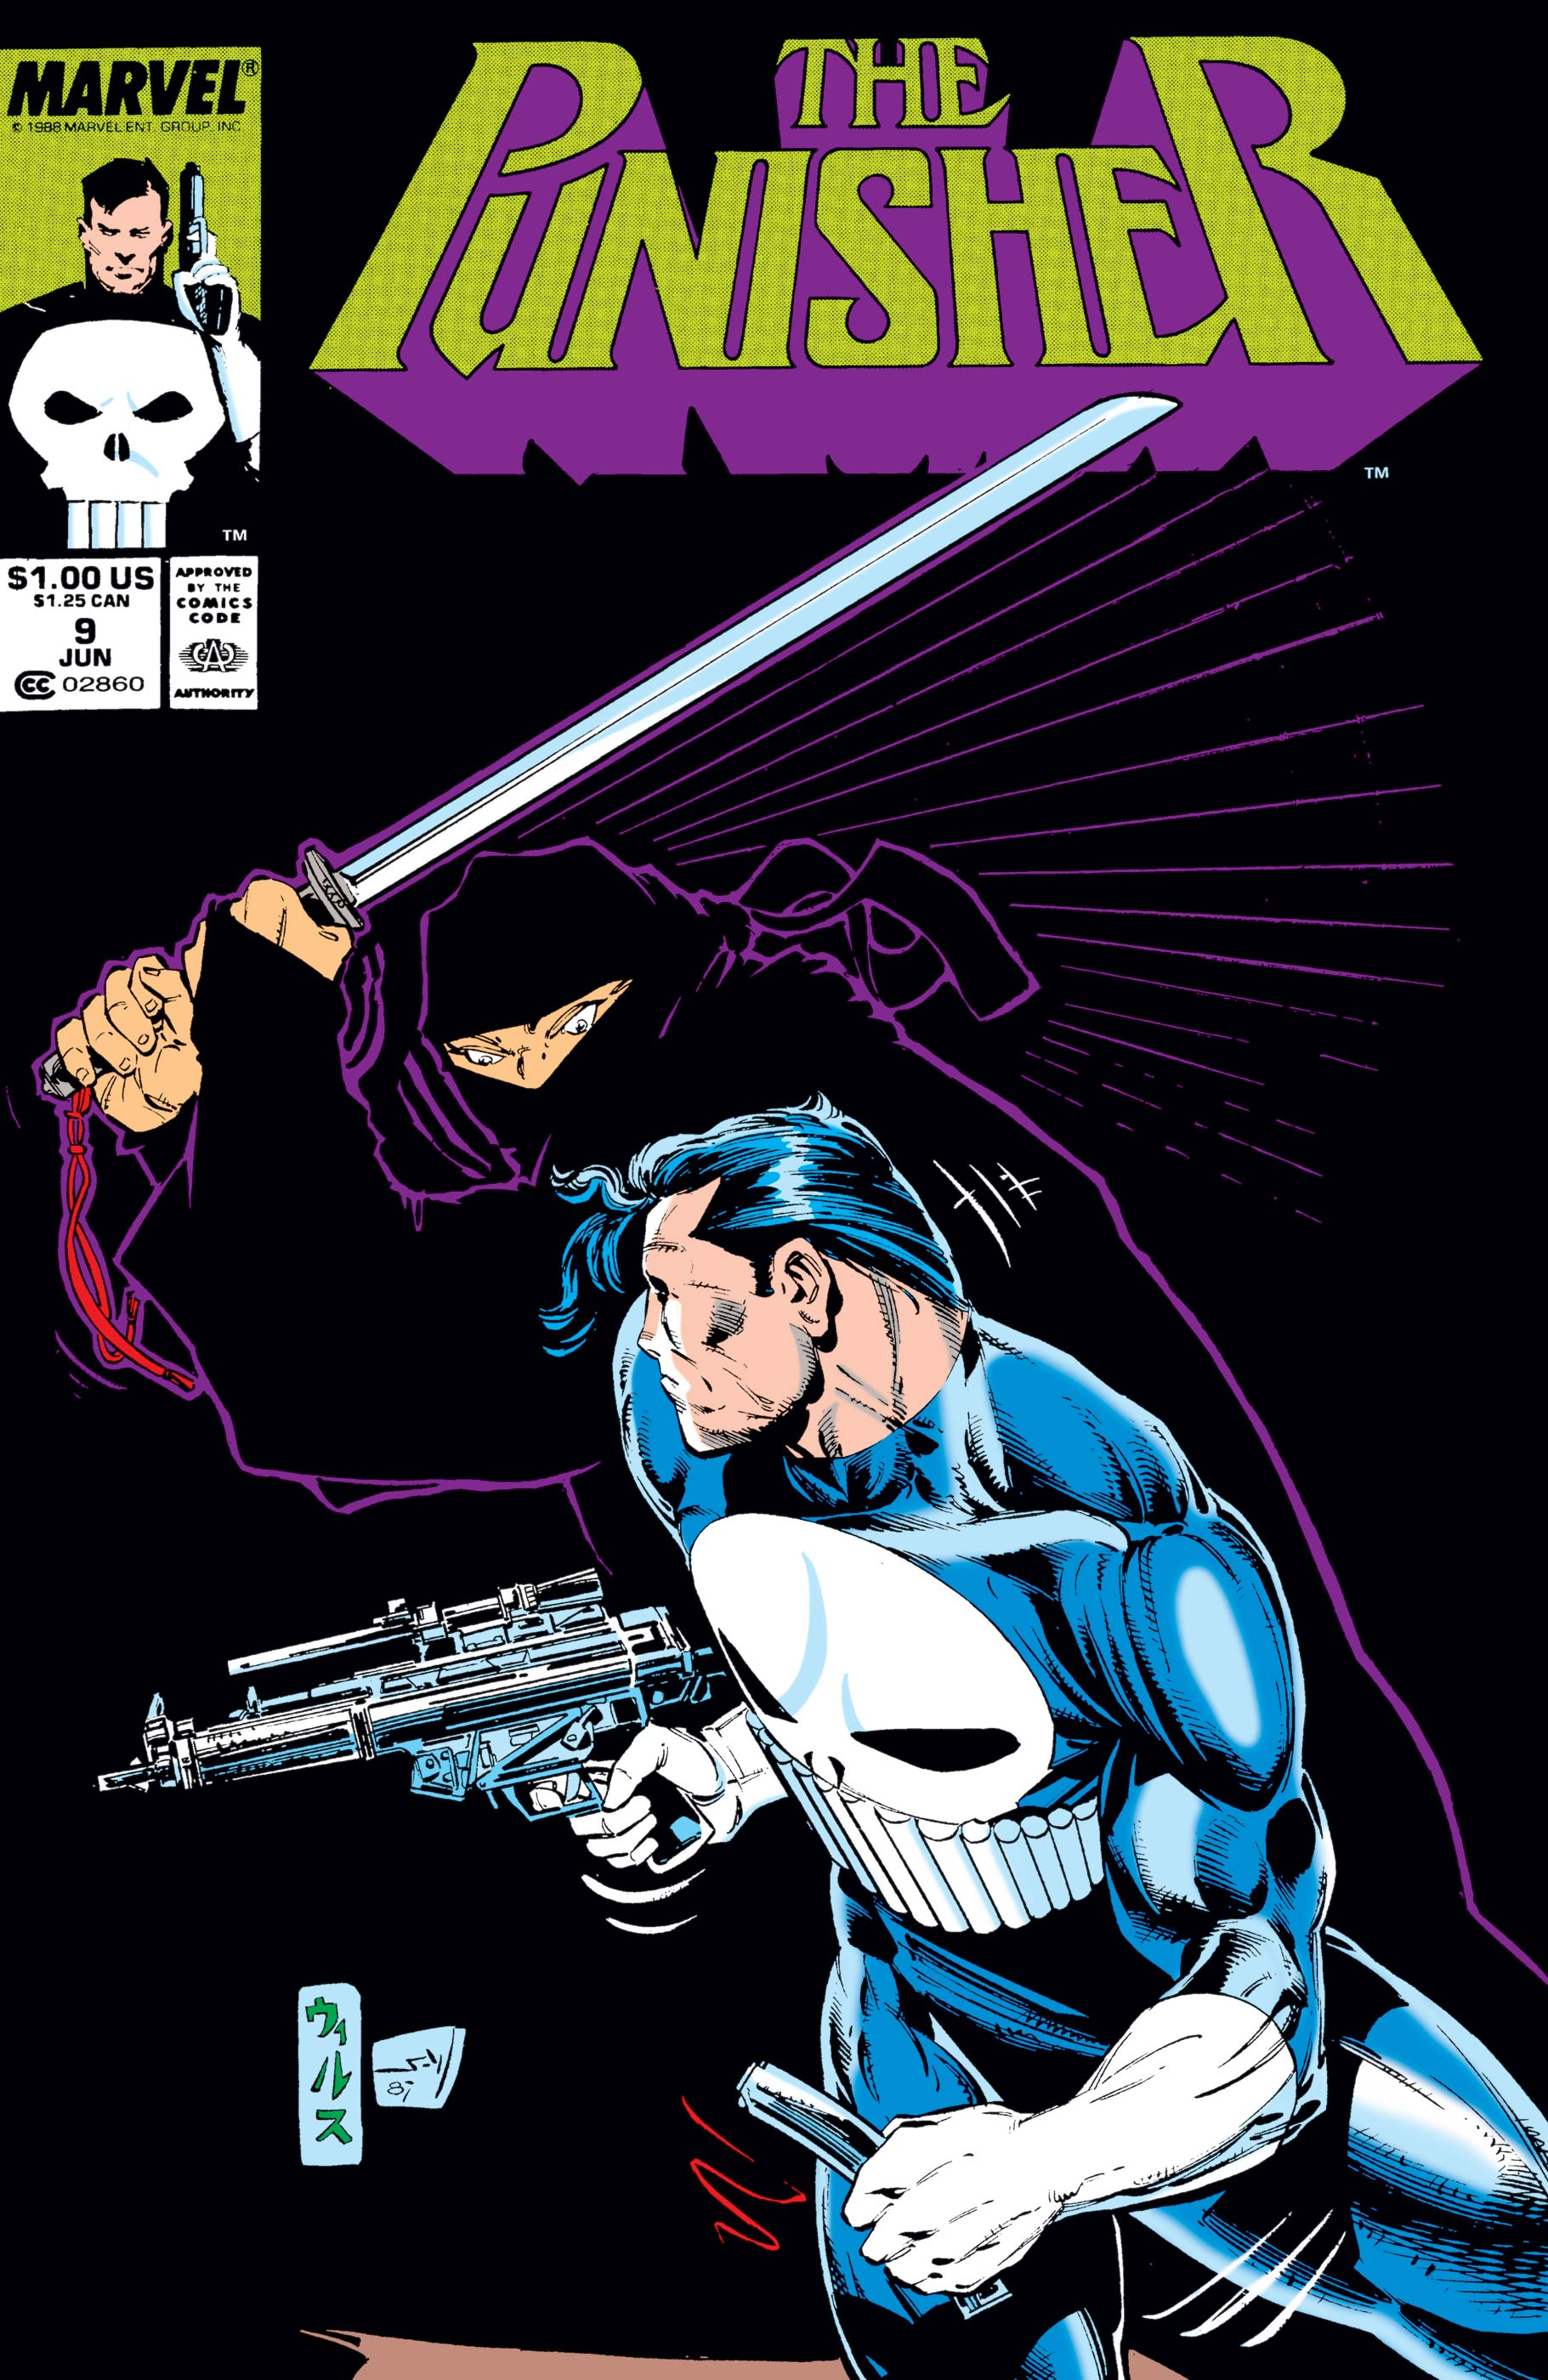 The Punisher (1987) #9